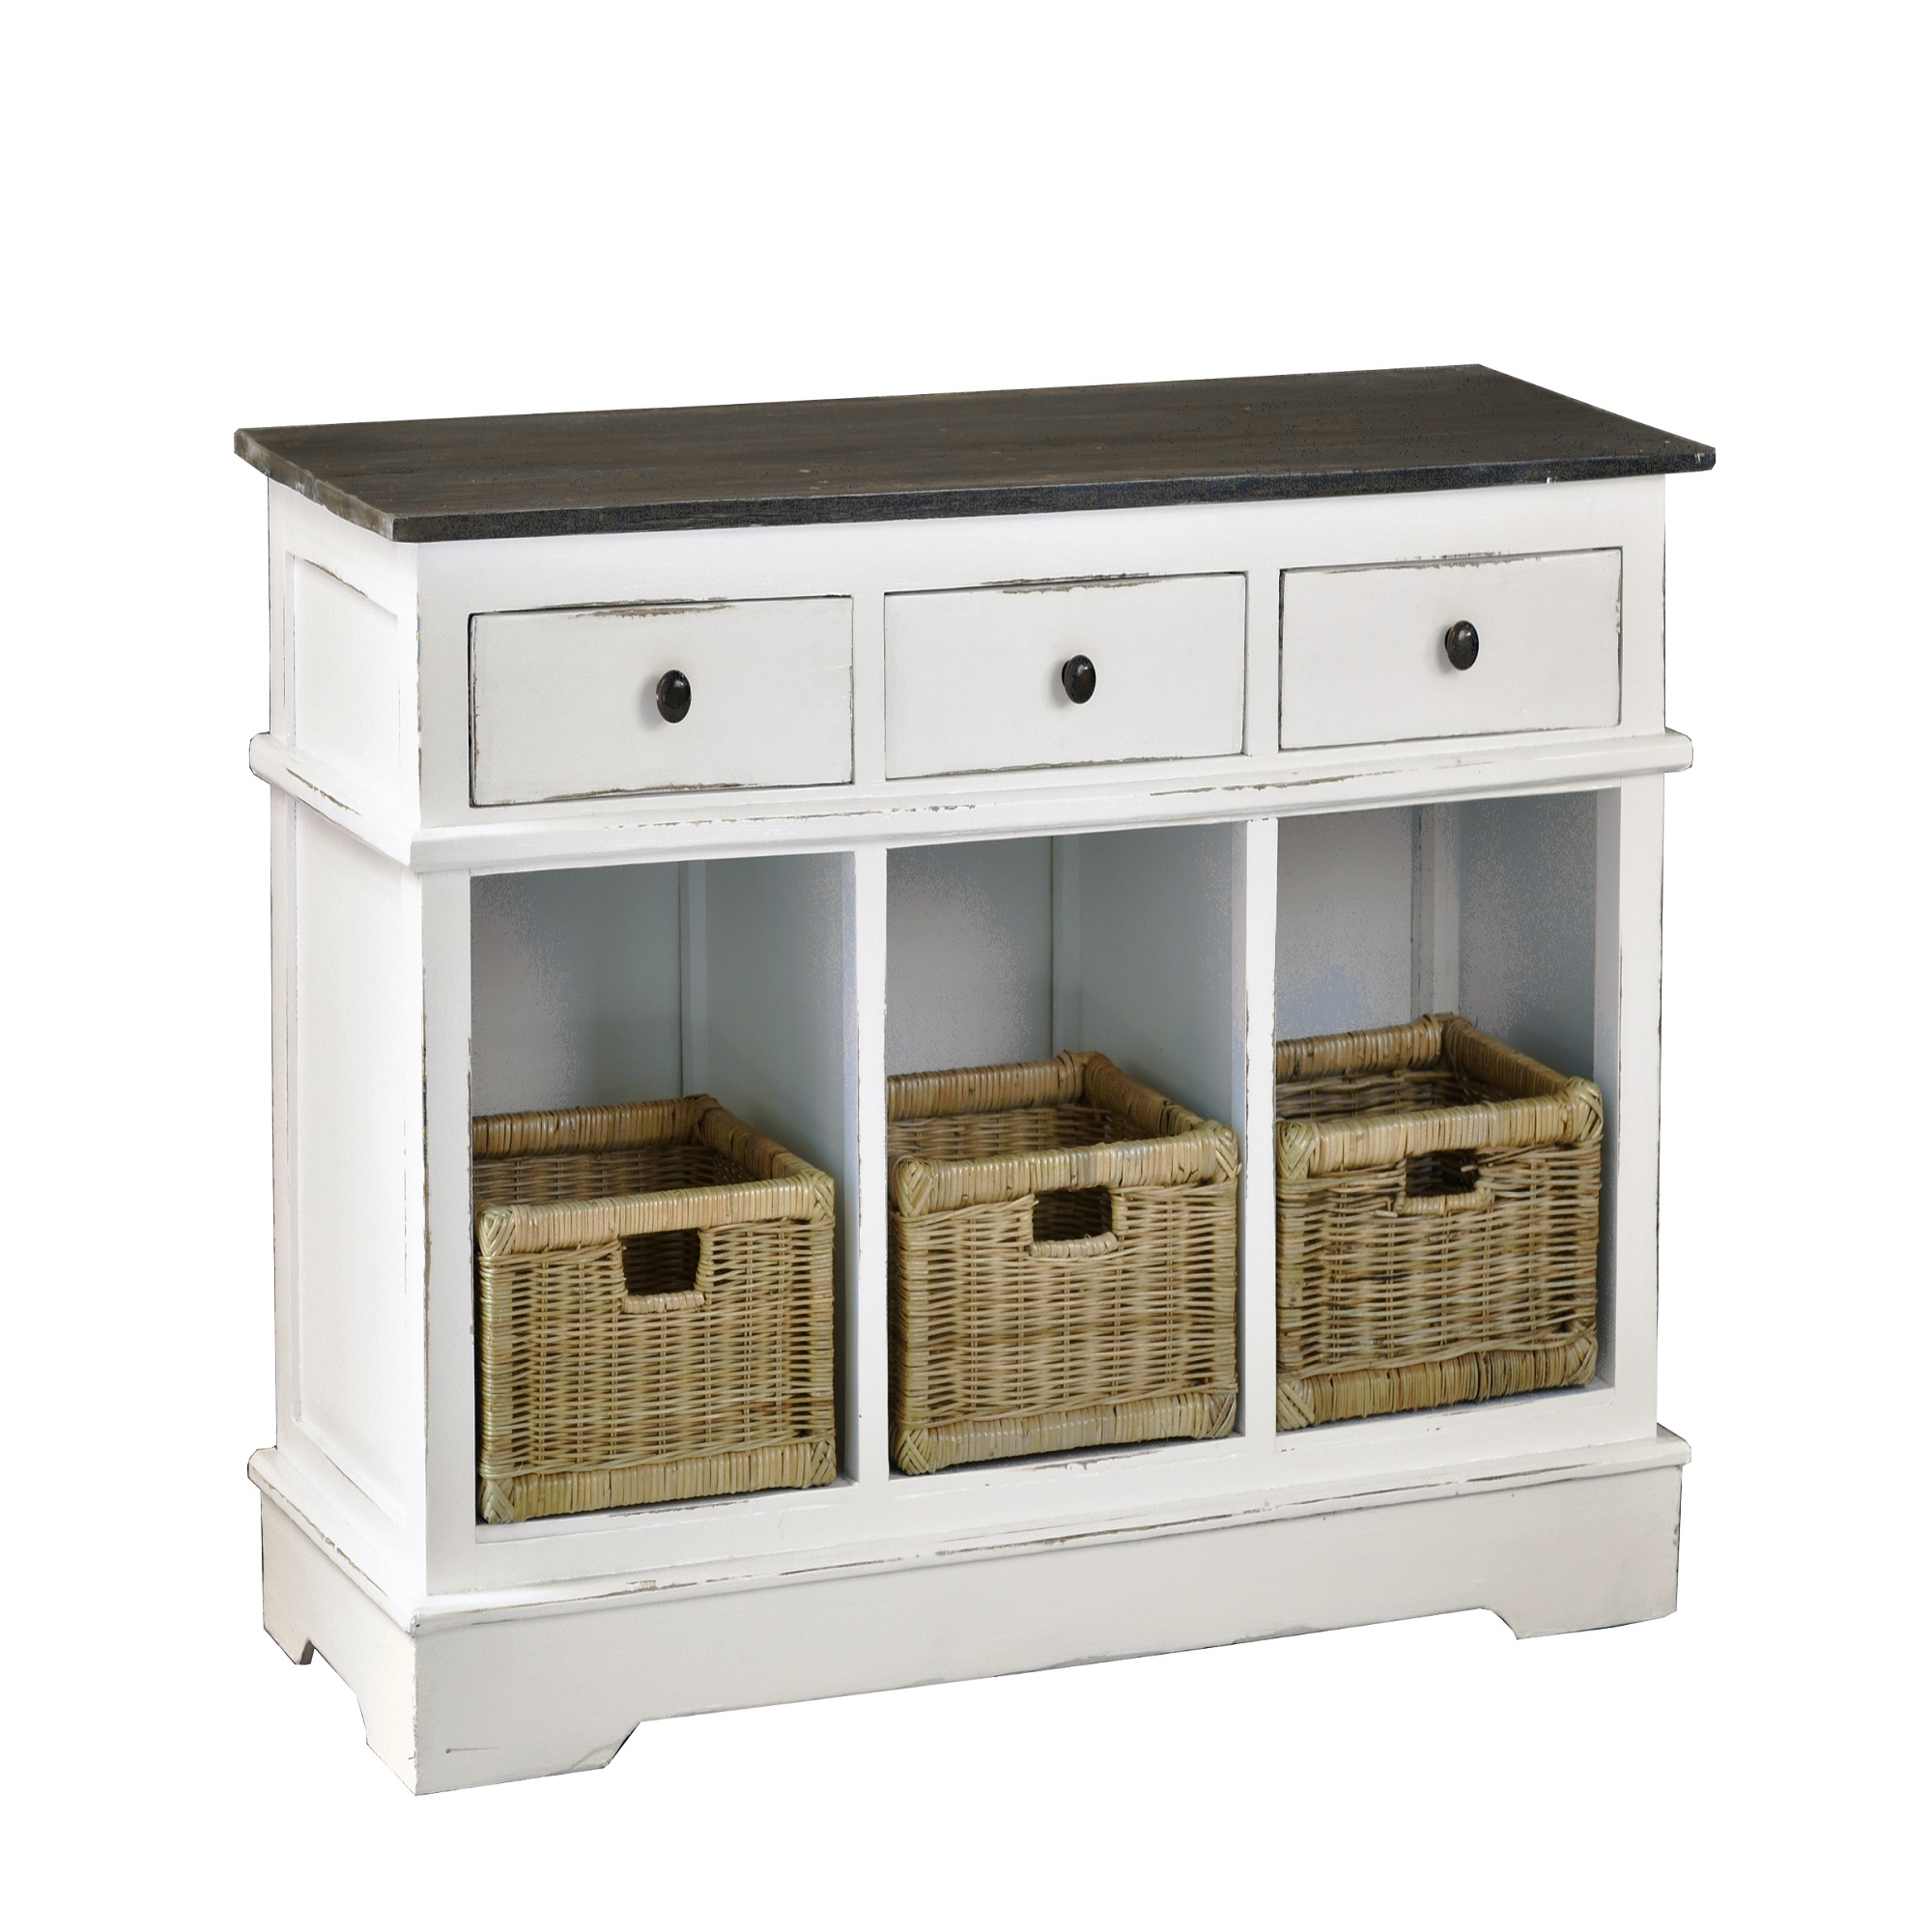 """42"""" White And Brown Cottage Sideboard With 3 Basket And For Albright 58"""" Wide 3 Drawer Sideboards (View 13 of 15)"""